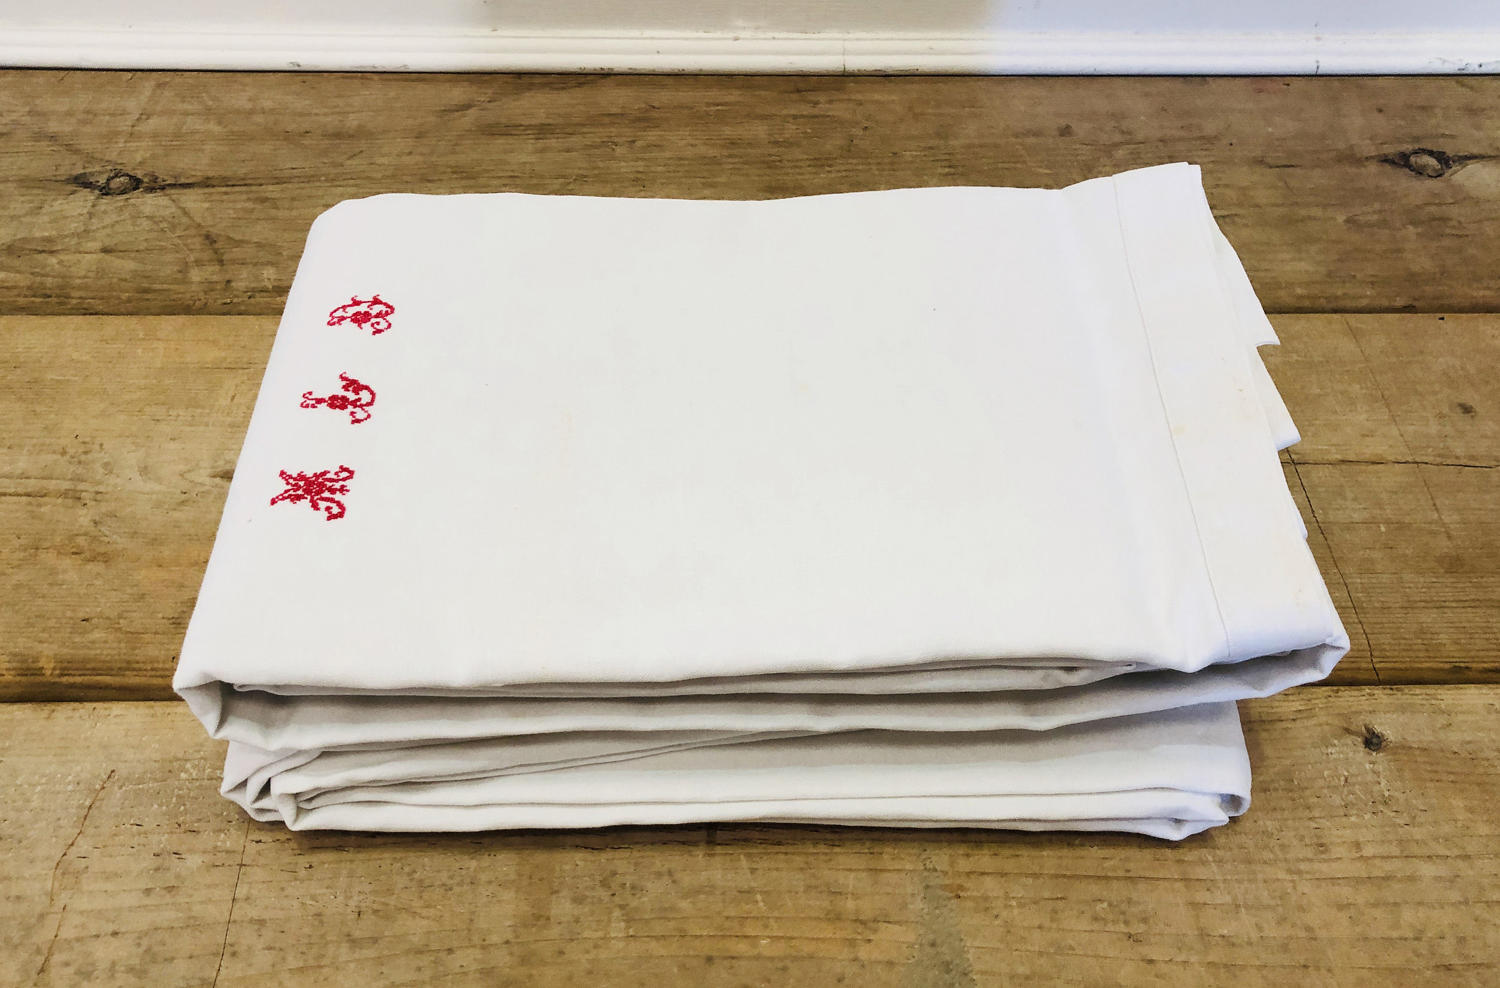 Pair of large French Sheets - red monogram M.L.D.